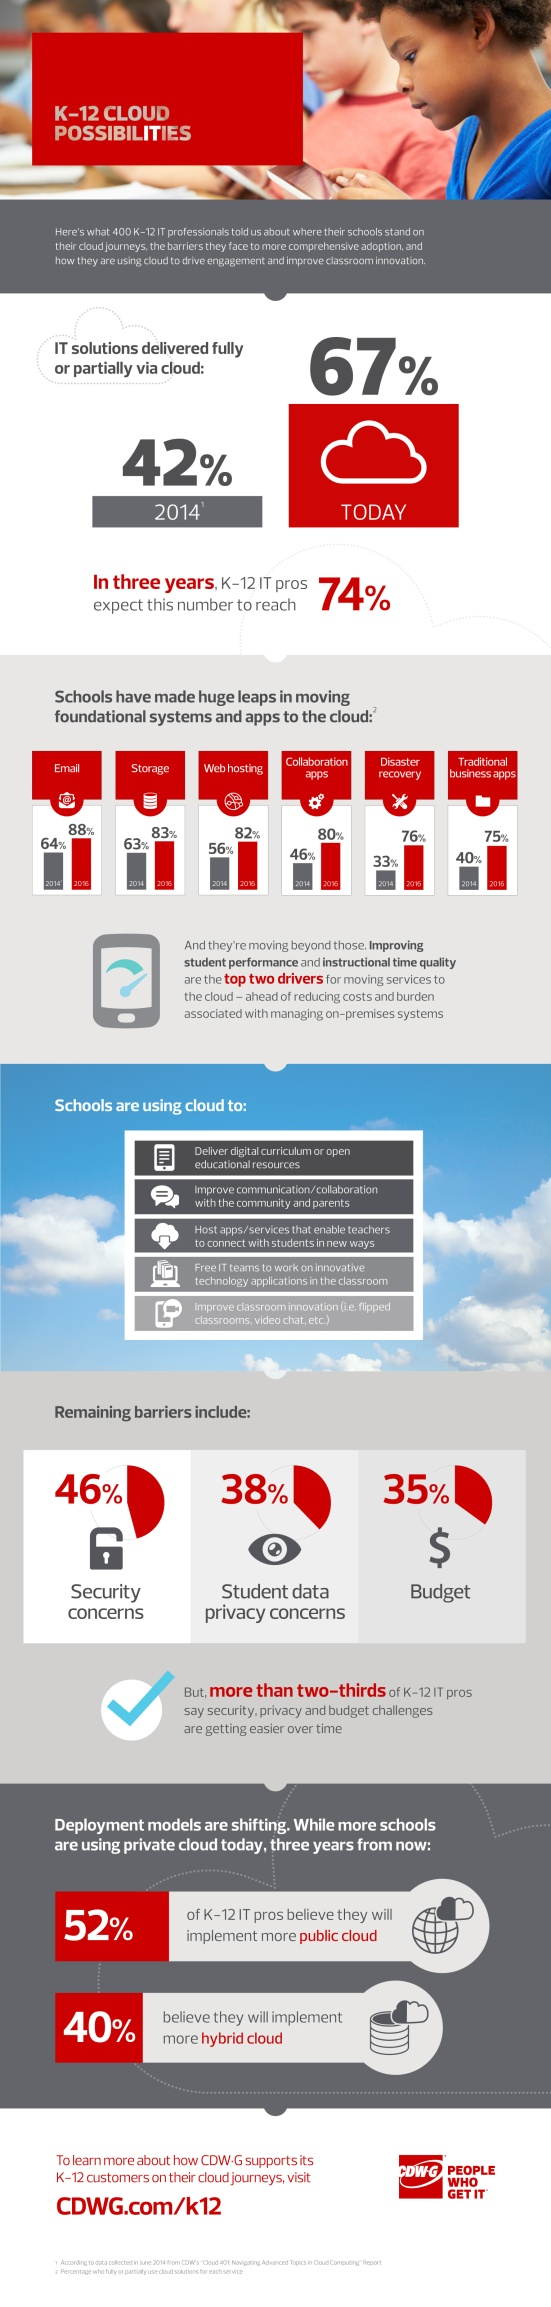 K12-Cloud-Possibilities-Infographic